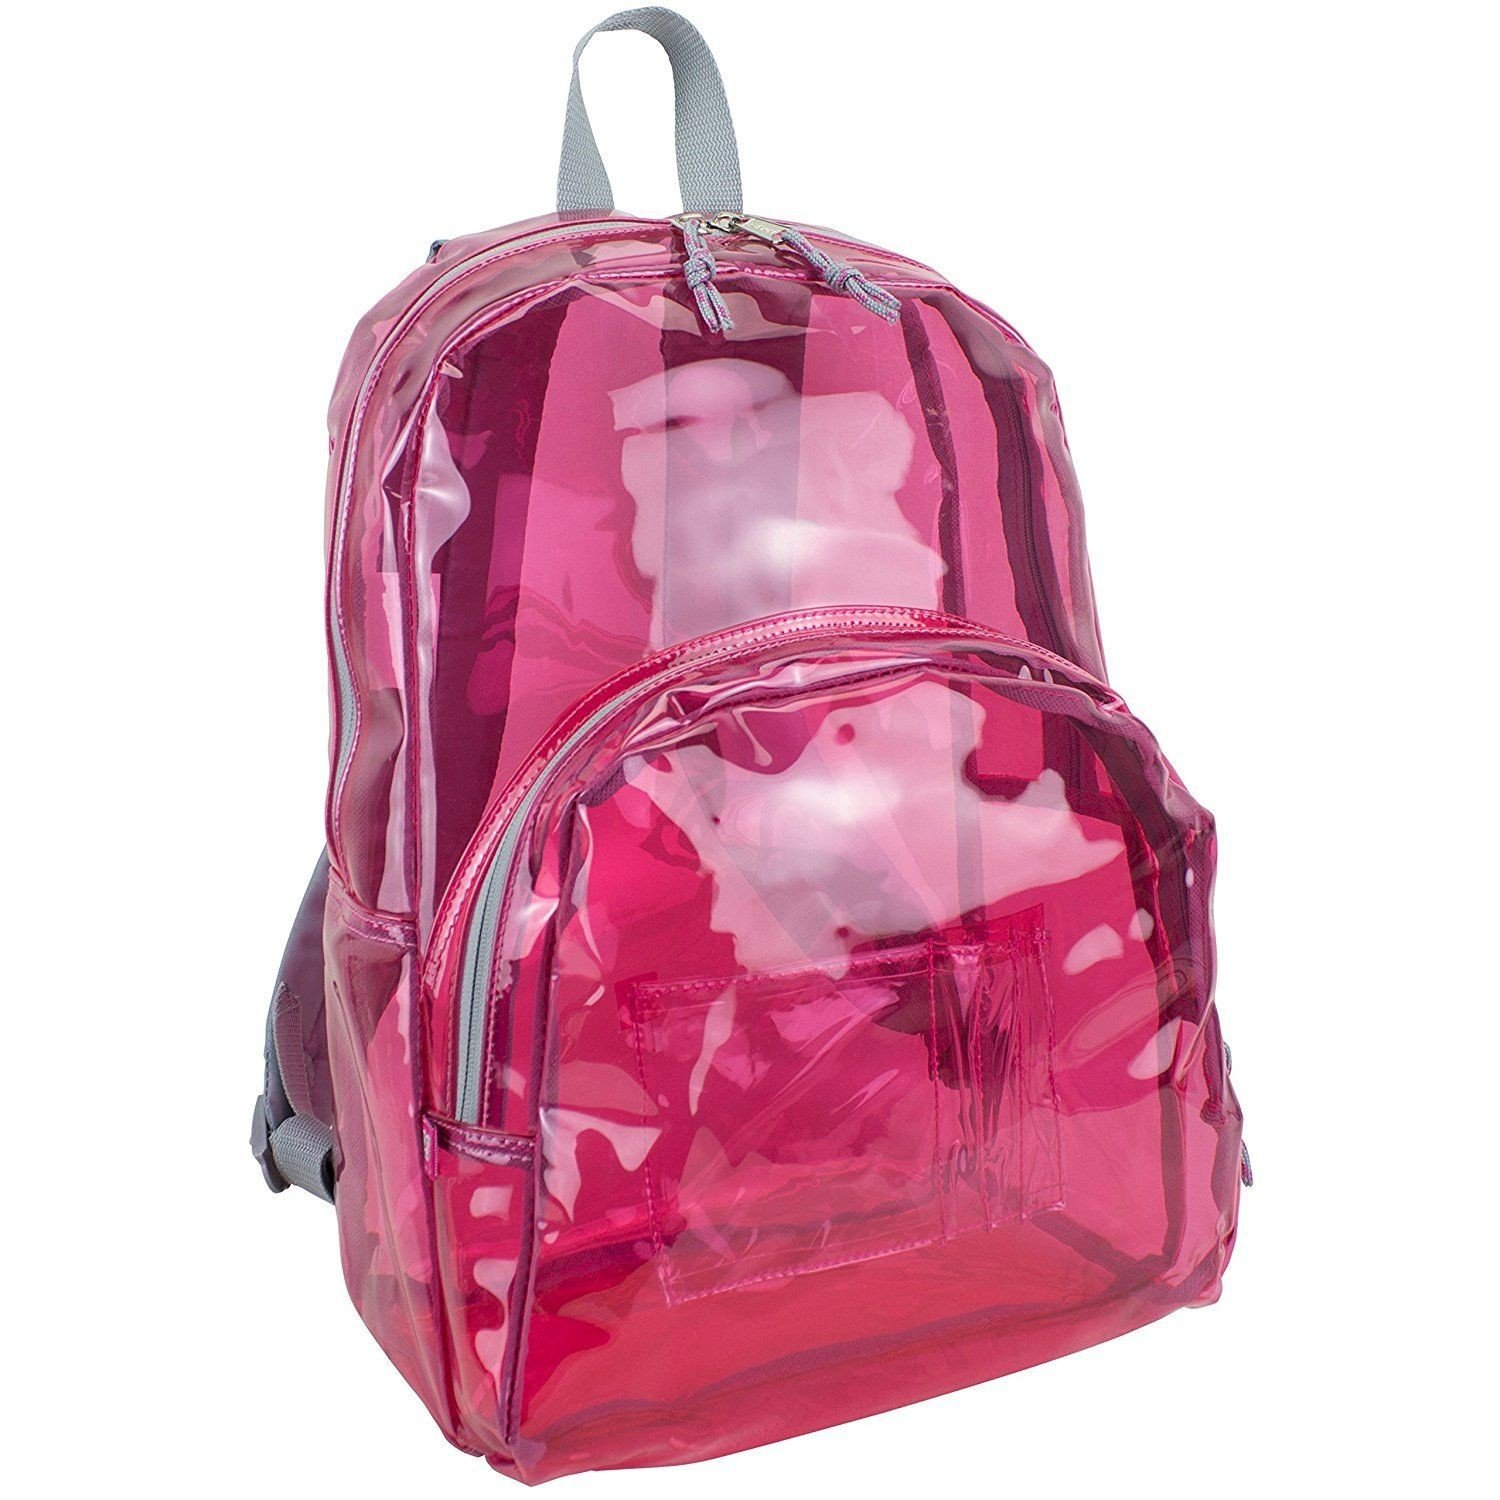 17'' Clear Pink Wholesale Backpack - Case of 24 by Eastsport (Image #2)